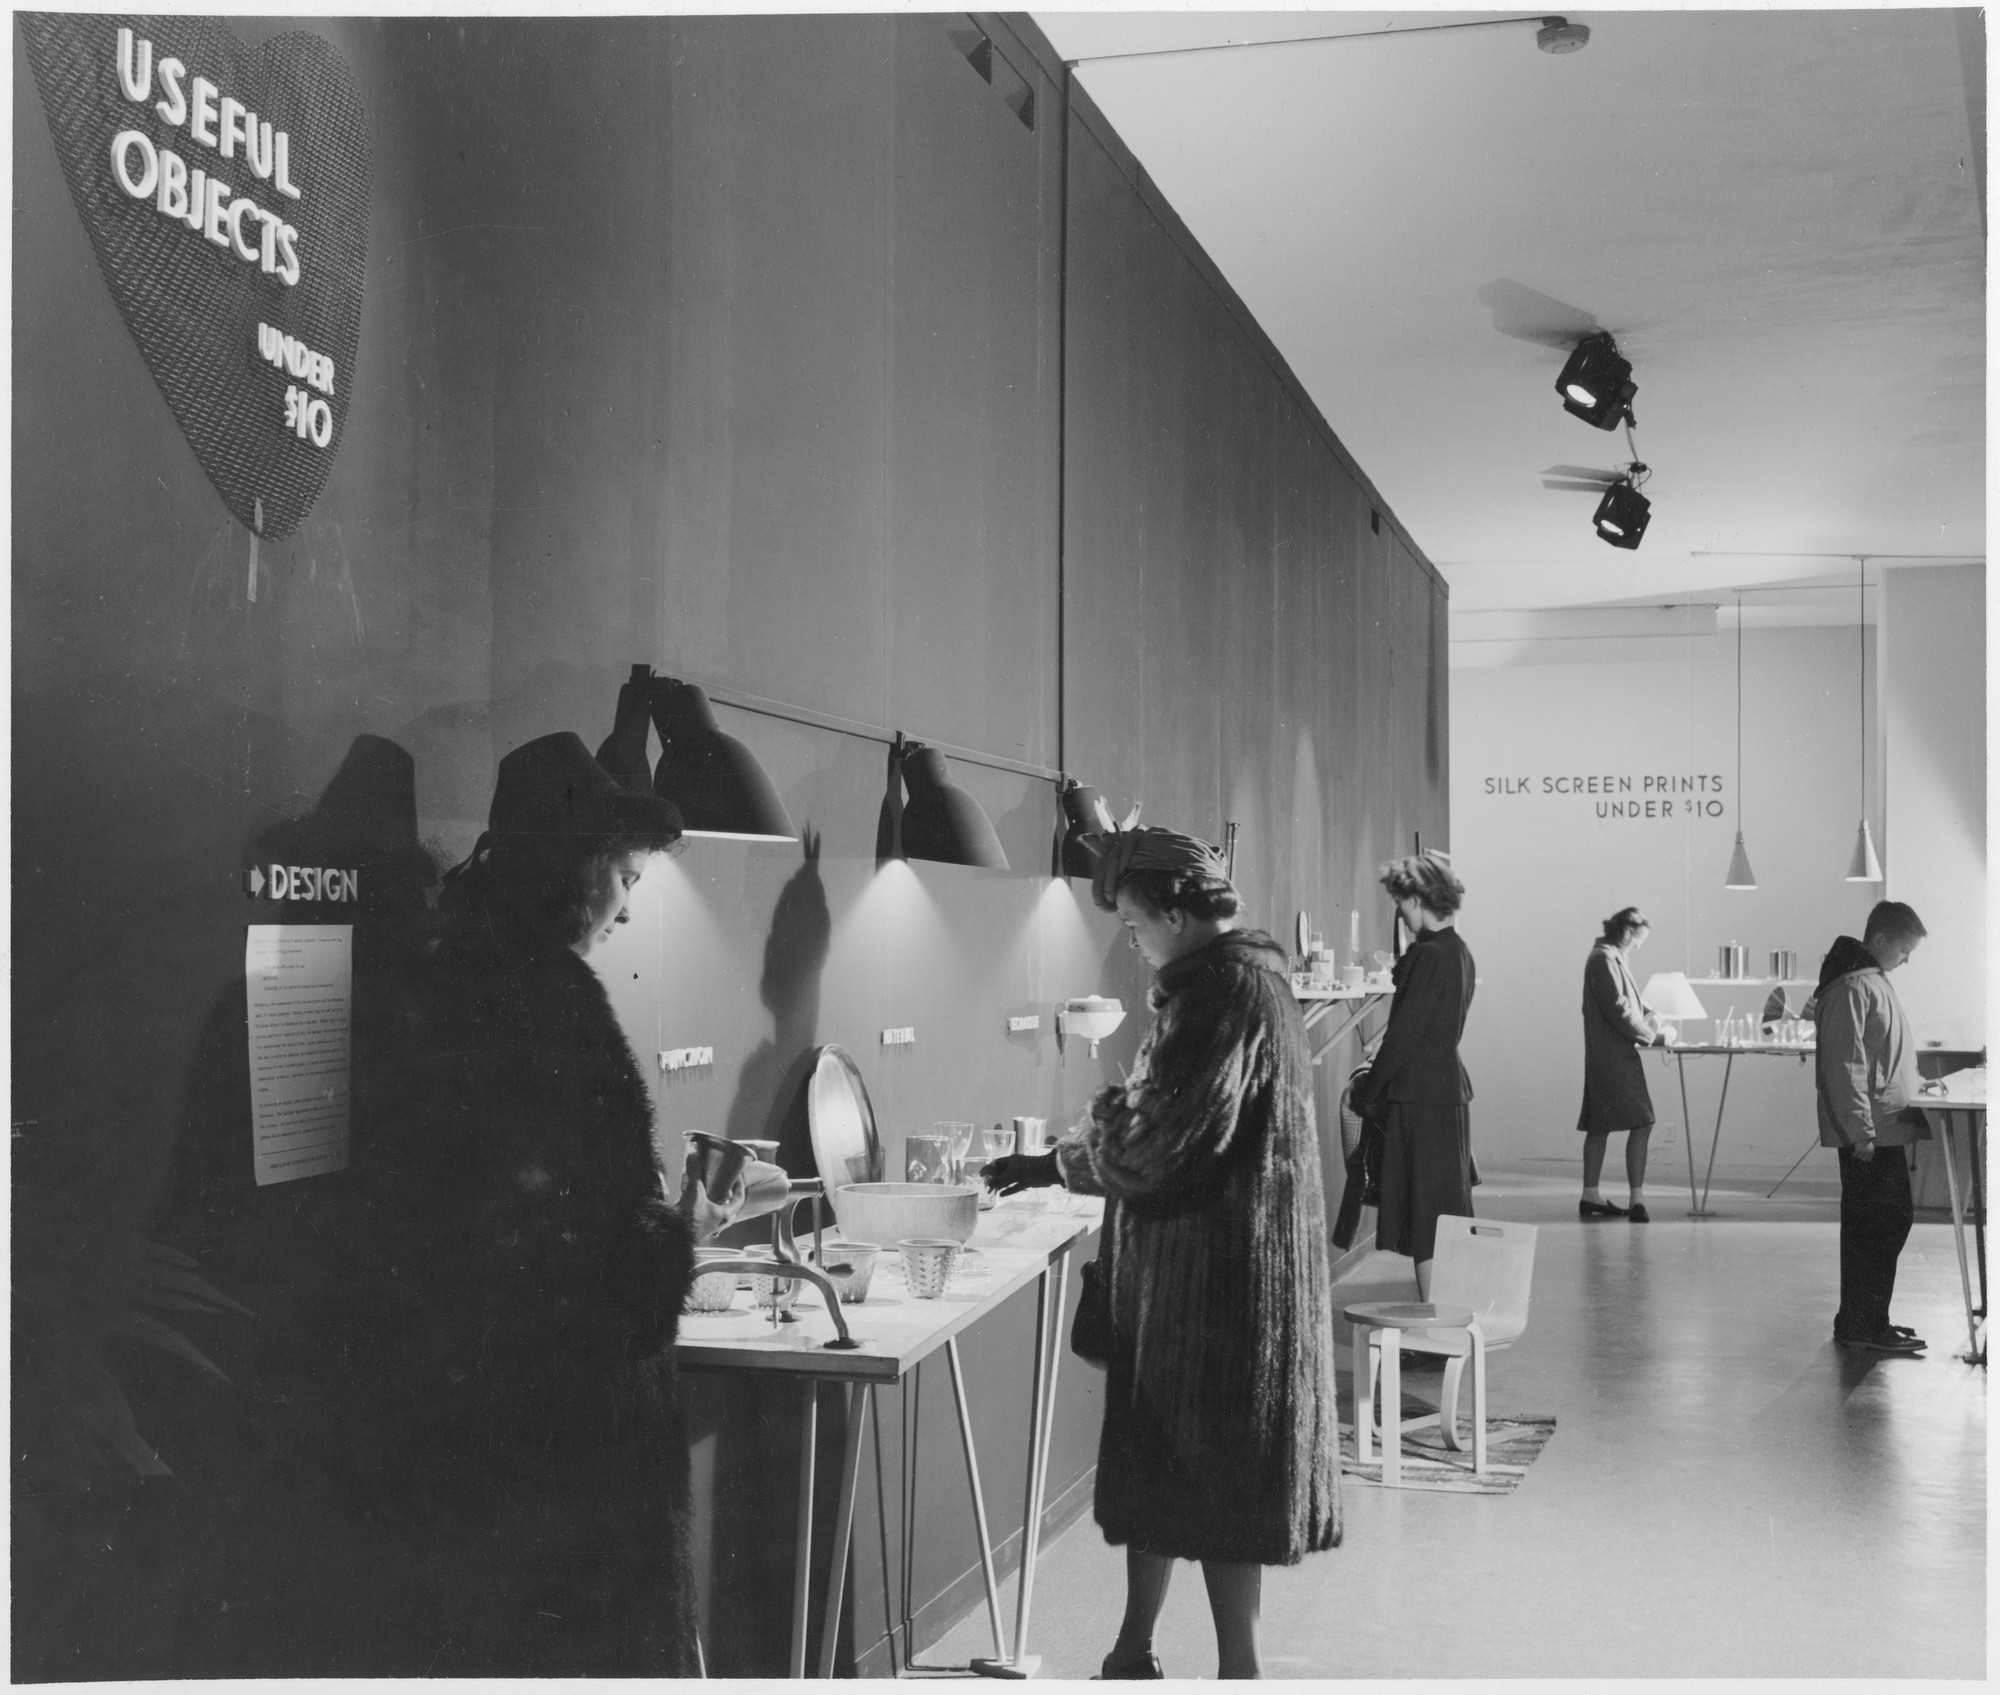 "Unidentified visitors at the exhibition, ""Useful Objects of American Design under $10"" November 26, 1940–December 24, 1940. Photographic Archive. The Museum of Modern Art Archives, New York. IN117.1"